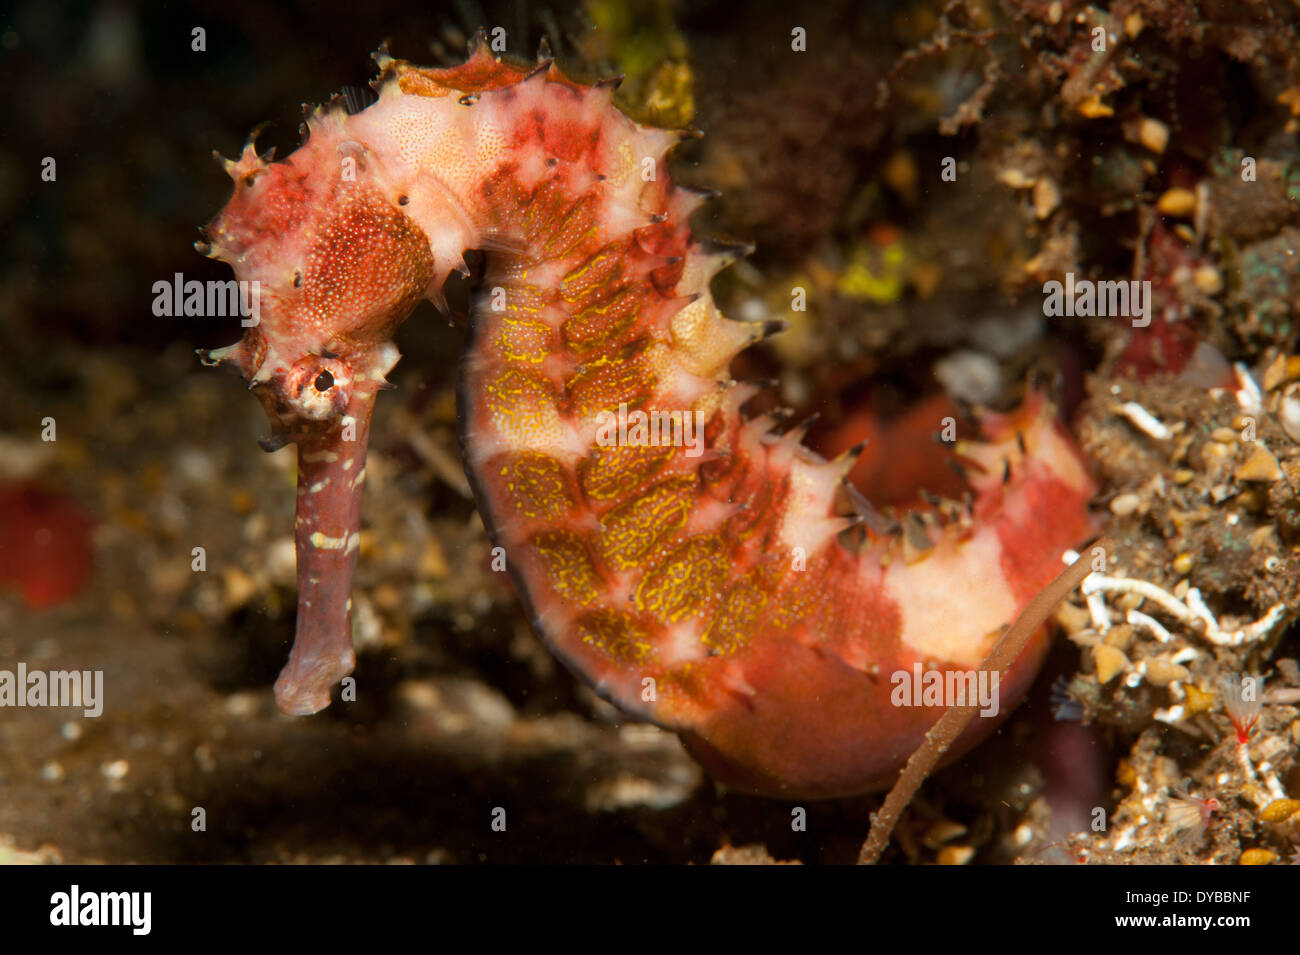 Thorny seahorse (Hippocampus histrix), side view, red and pink with yellow markings, Tulamben, Bali, Indonesia. - Stock Image